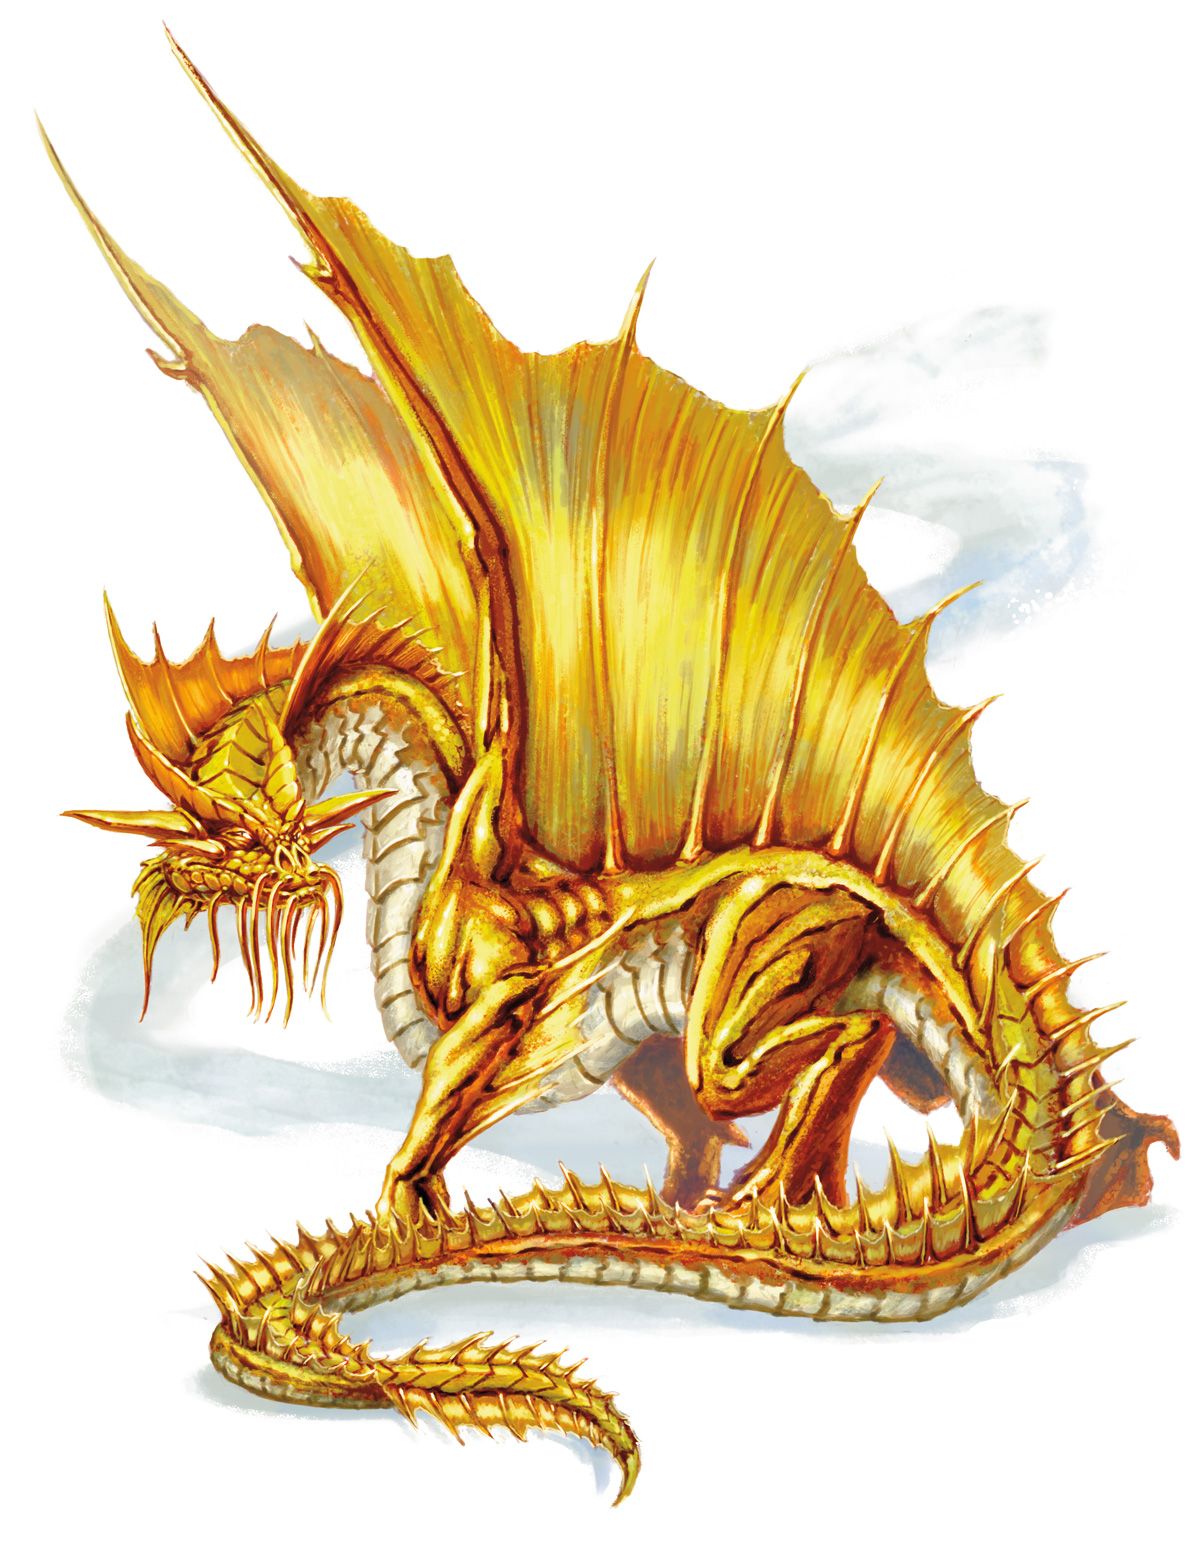 Monster_Manual_5e_-_Dragon,_Gold_-_p113